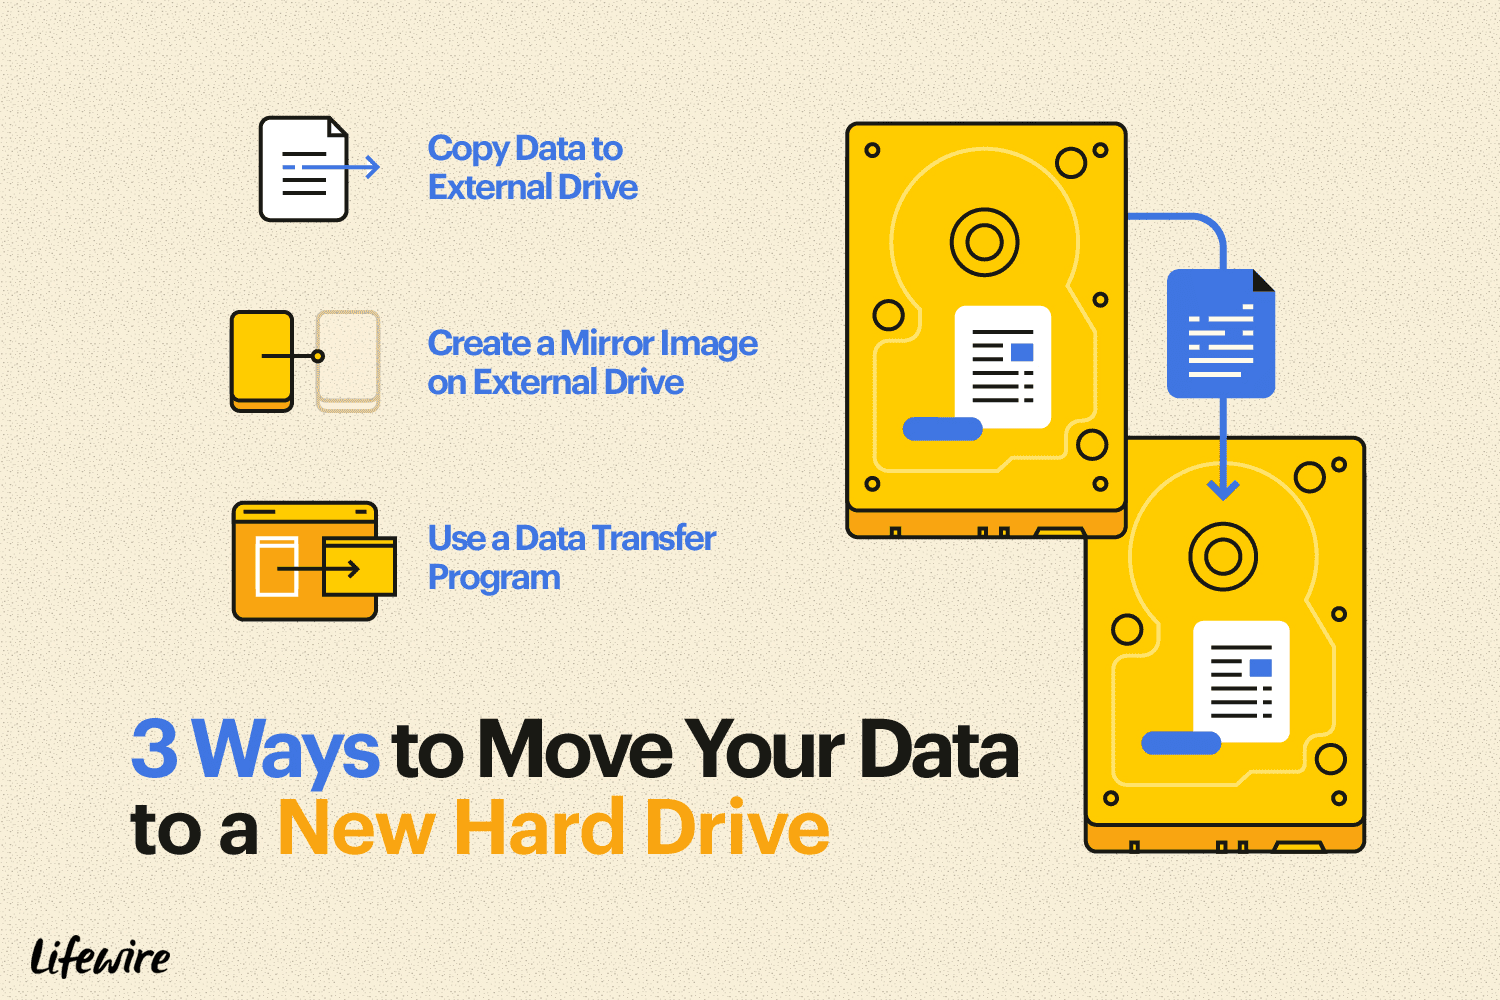 how to move data from old computer to new